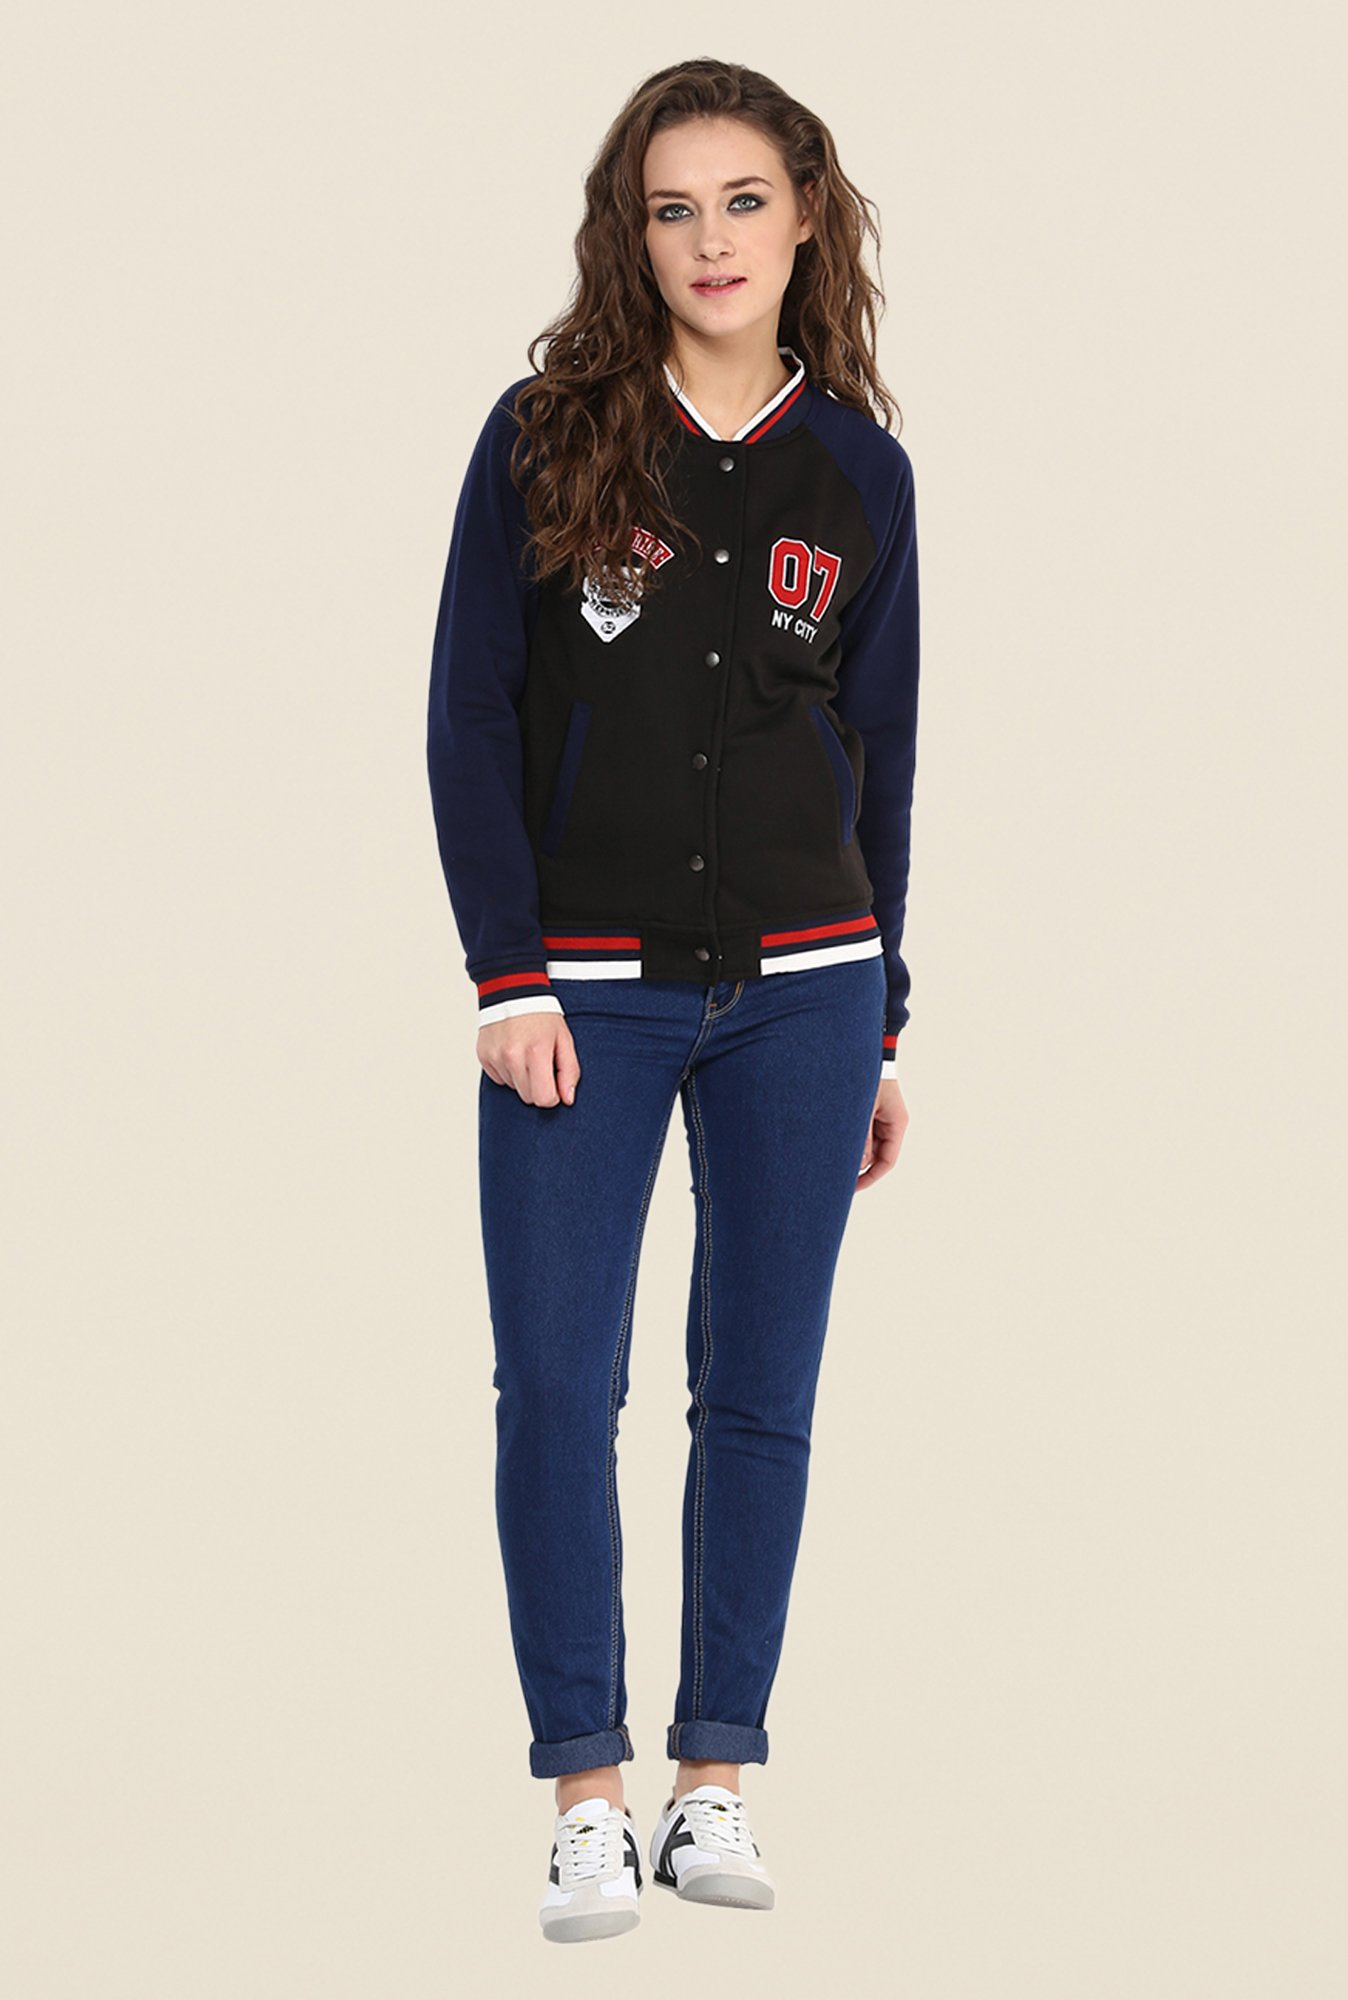 Yepme Black & Blue Cindy Full-sleeved Jacket